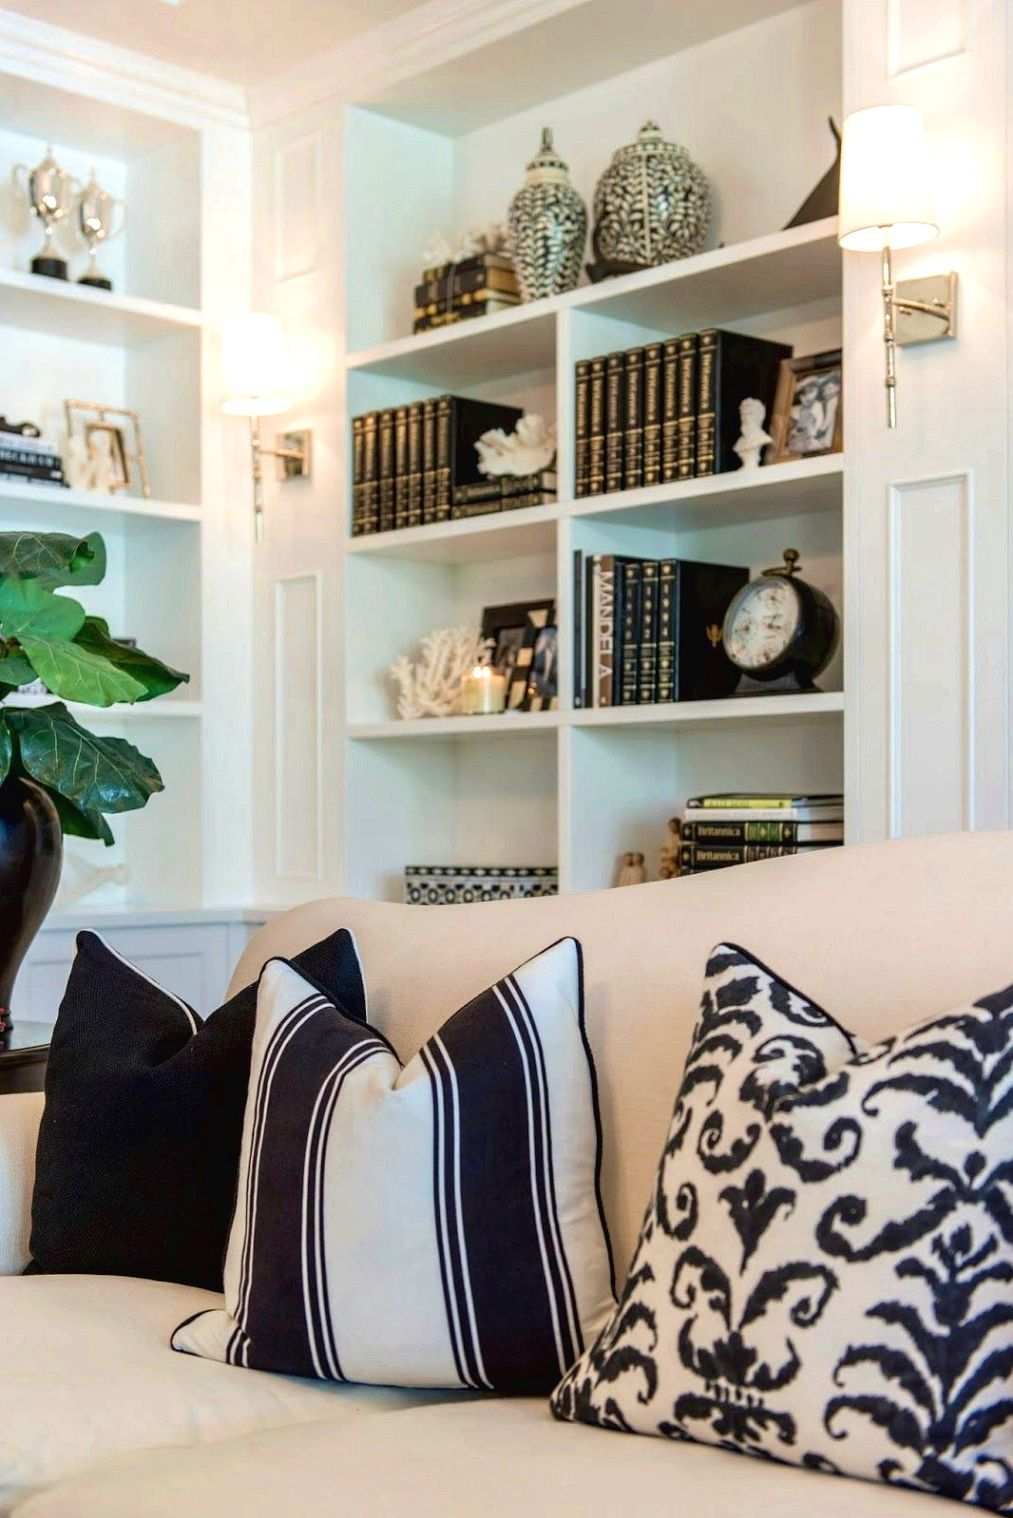 Decorate A Room Online: Living Room Decor Tips; You Can Find Cheaper Things To